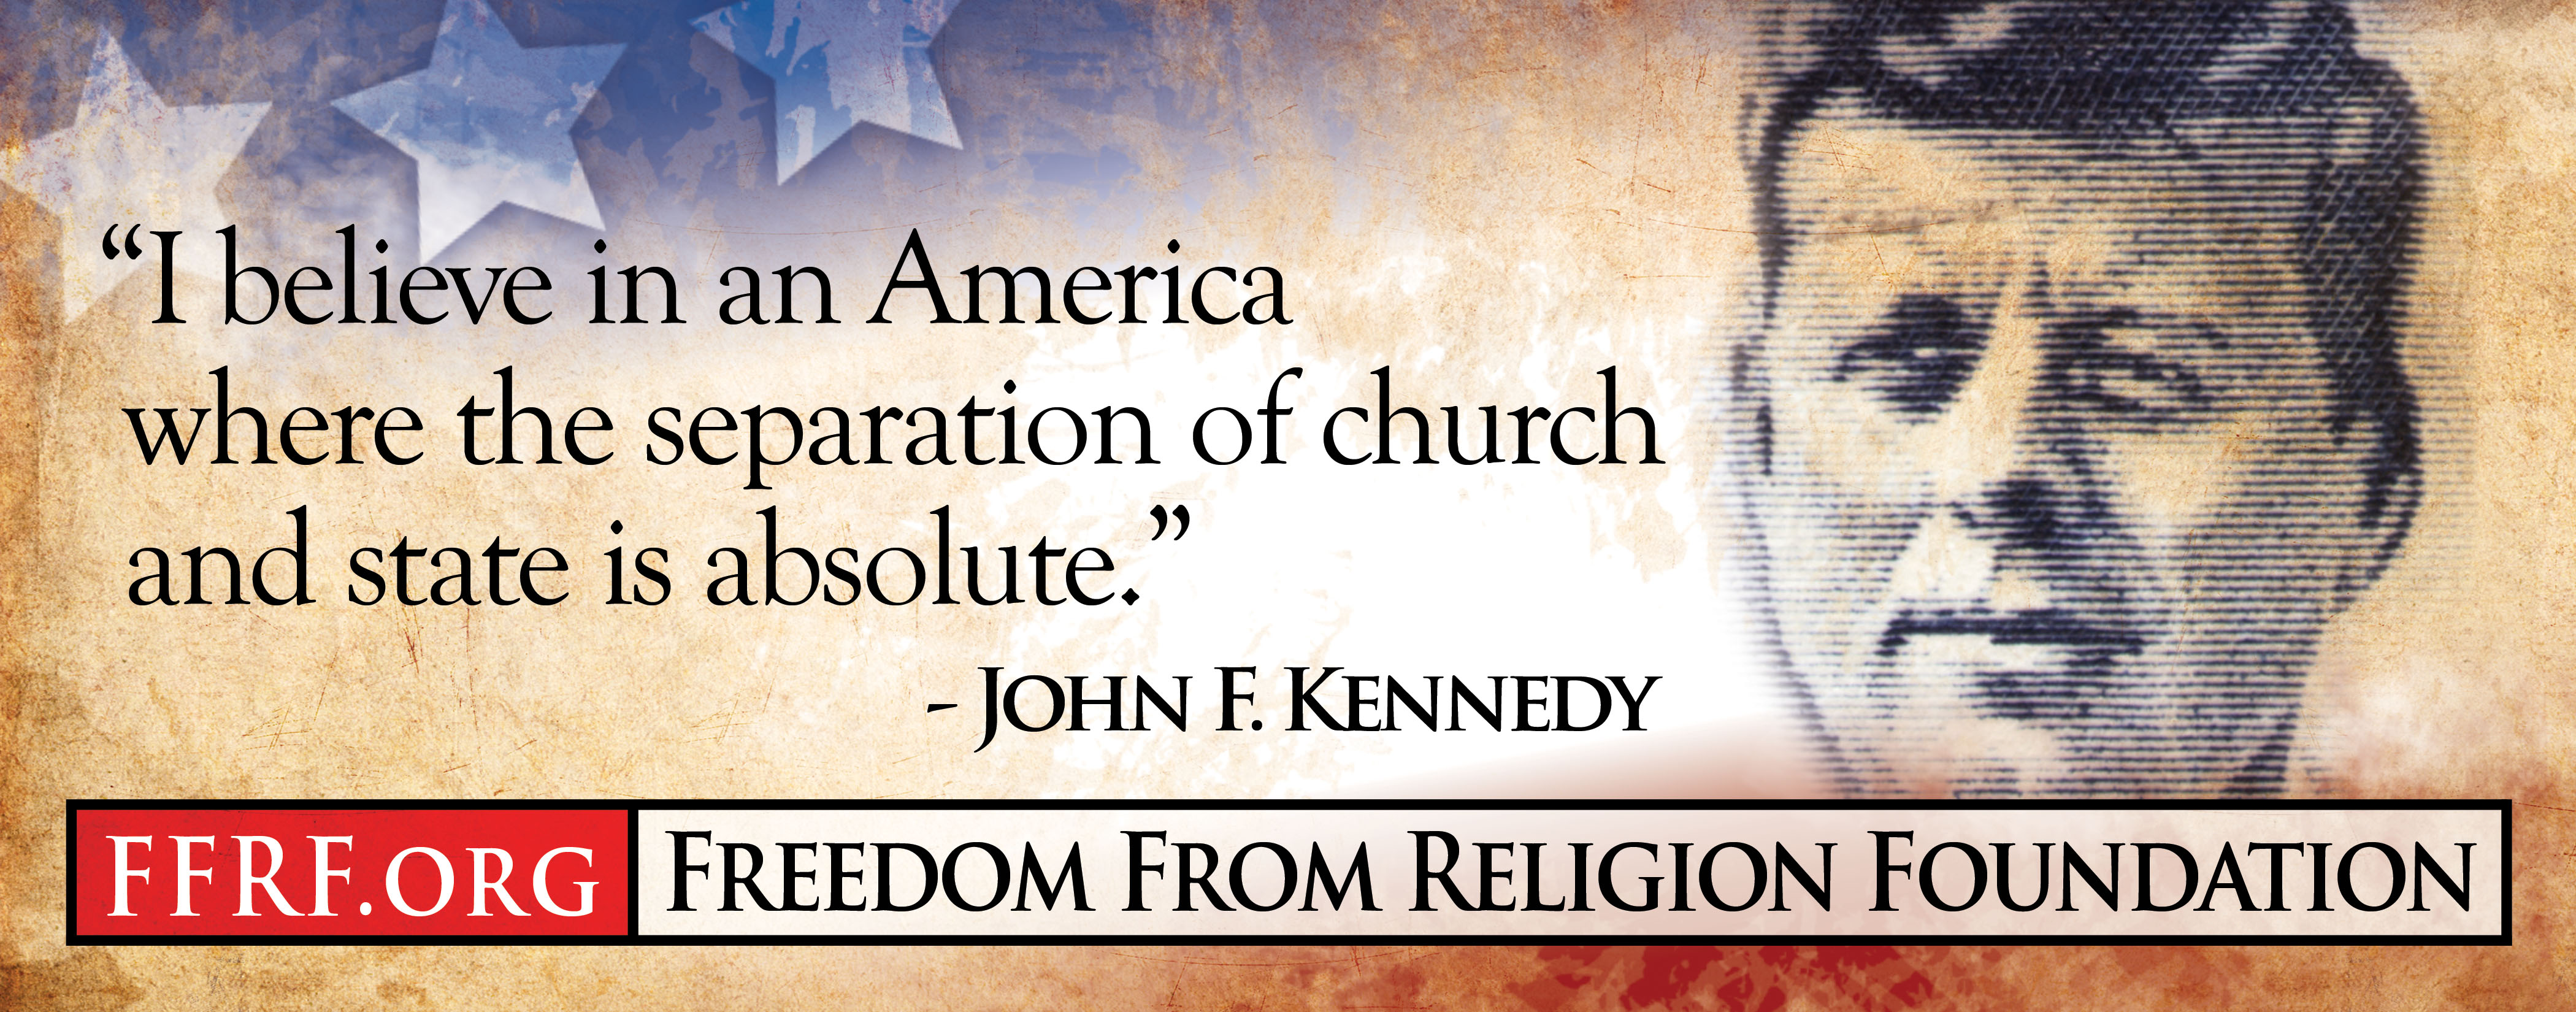 atheist billboard quoting john f kennedy goes up in lubbock texas